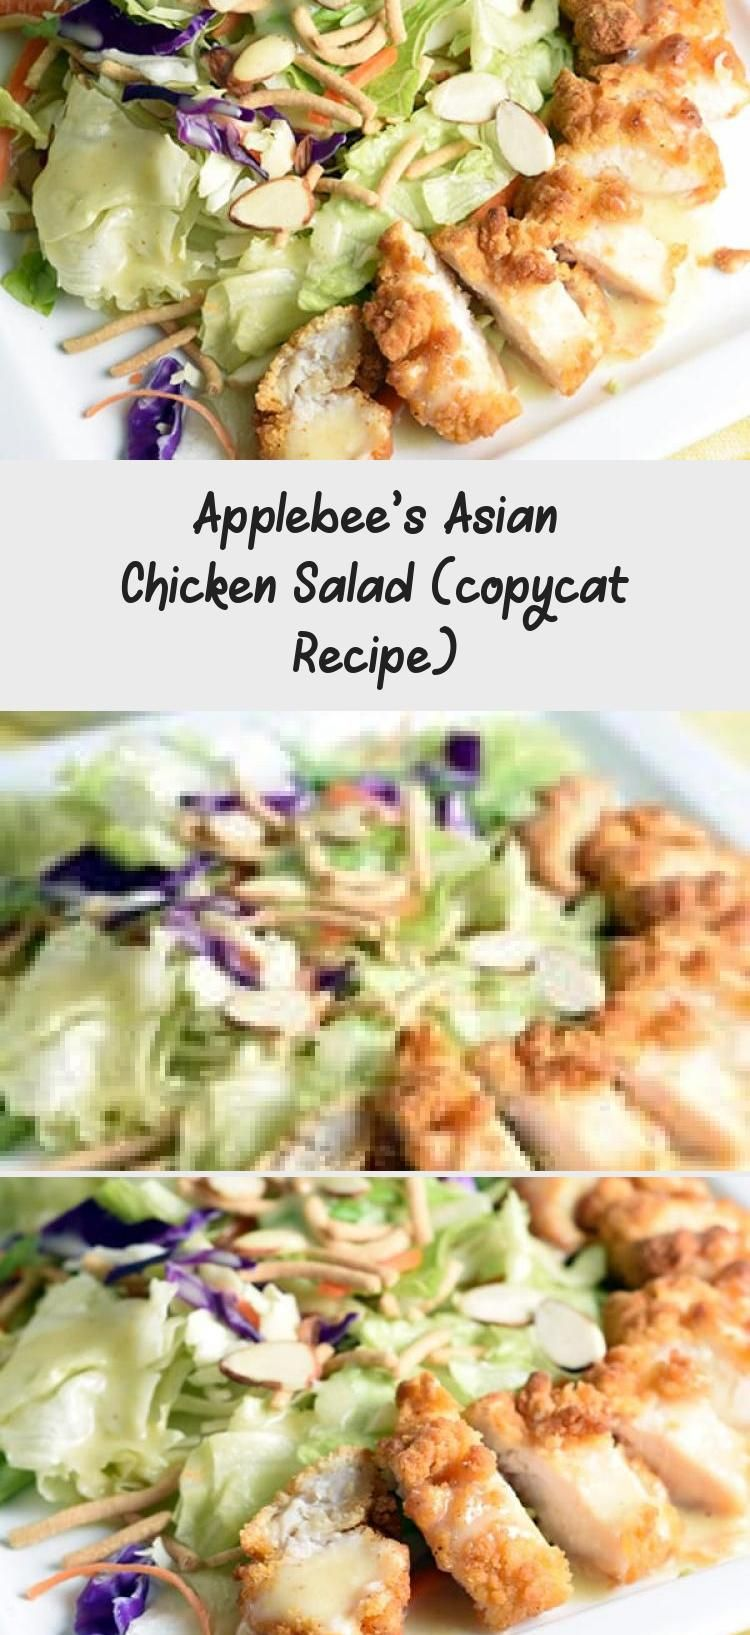 Applebee's Asian Chicken Salad (copycat Recipe) Now you can make the ever-popular Applebee's Asian Chicken Salad at home with this copycat recipe. Save money, but with the same delicious results!